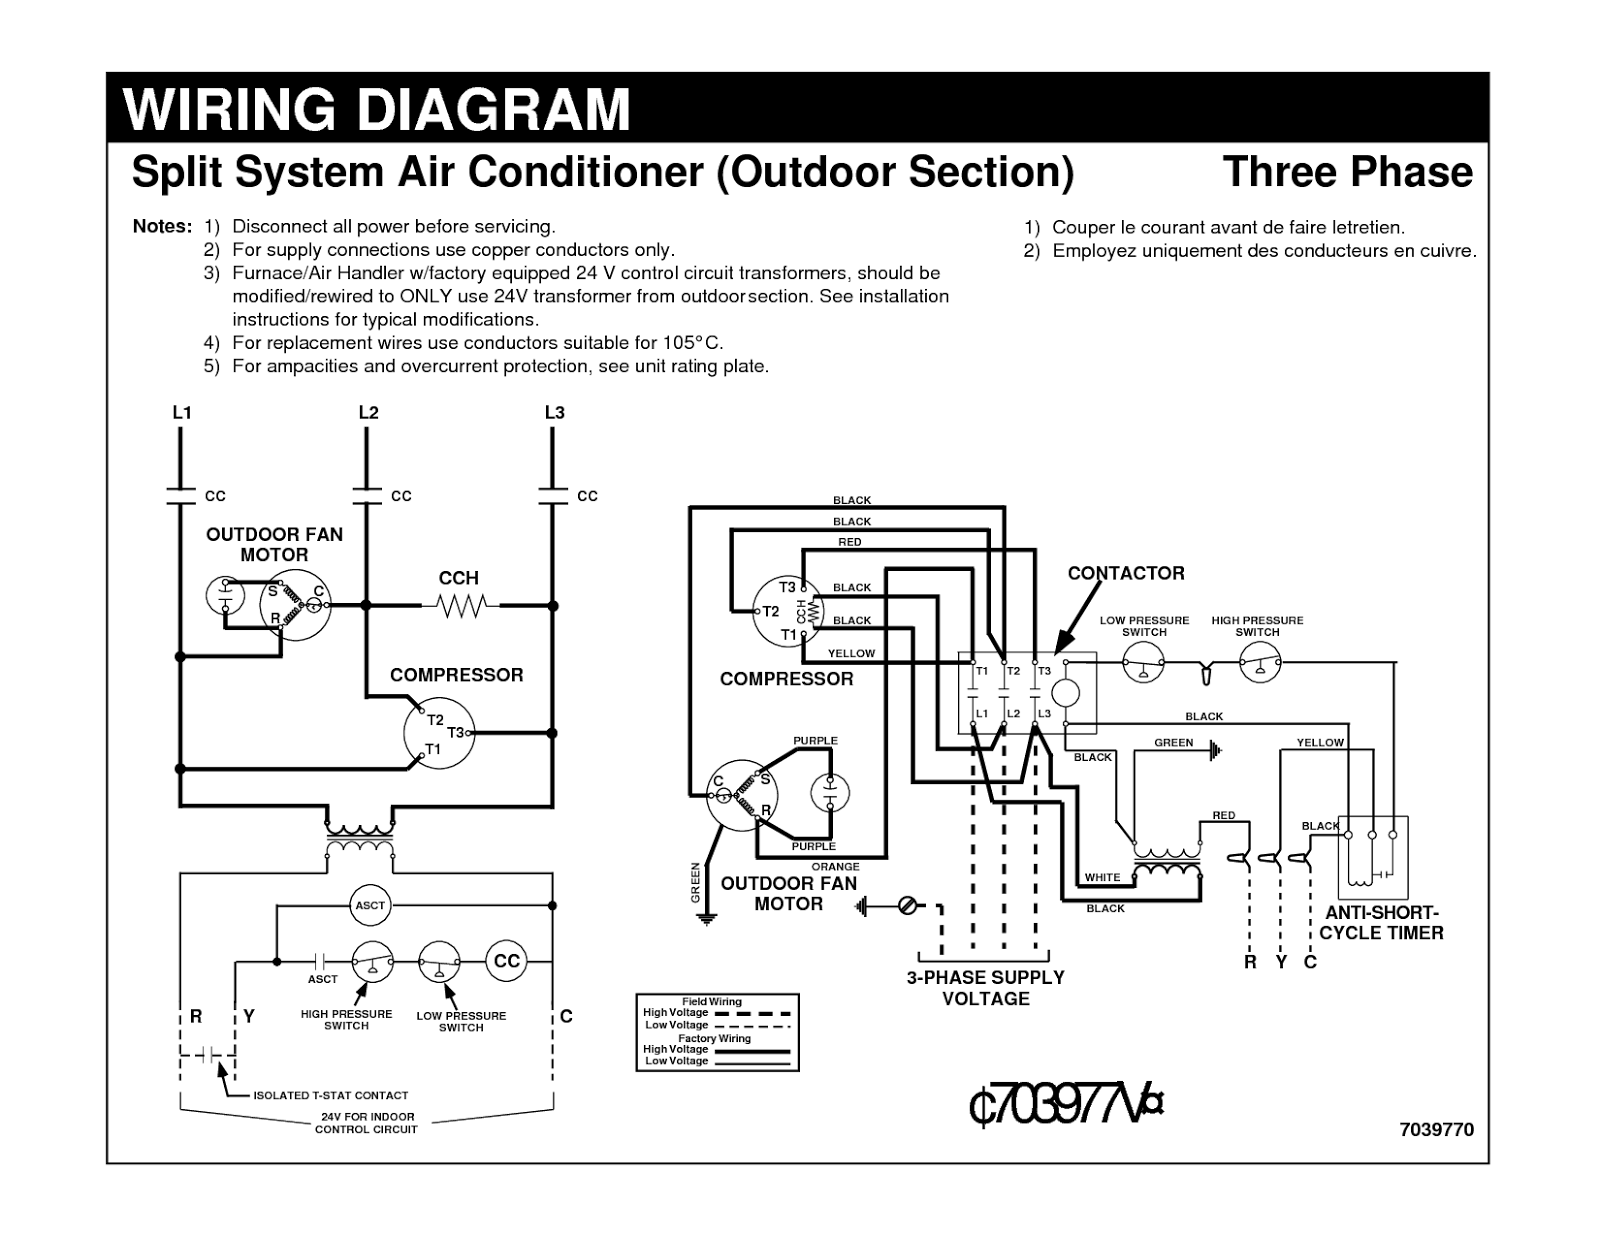 electrician wiring diagram pdf